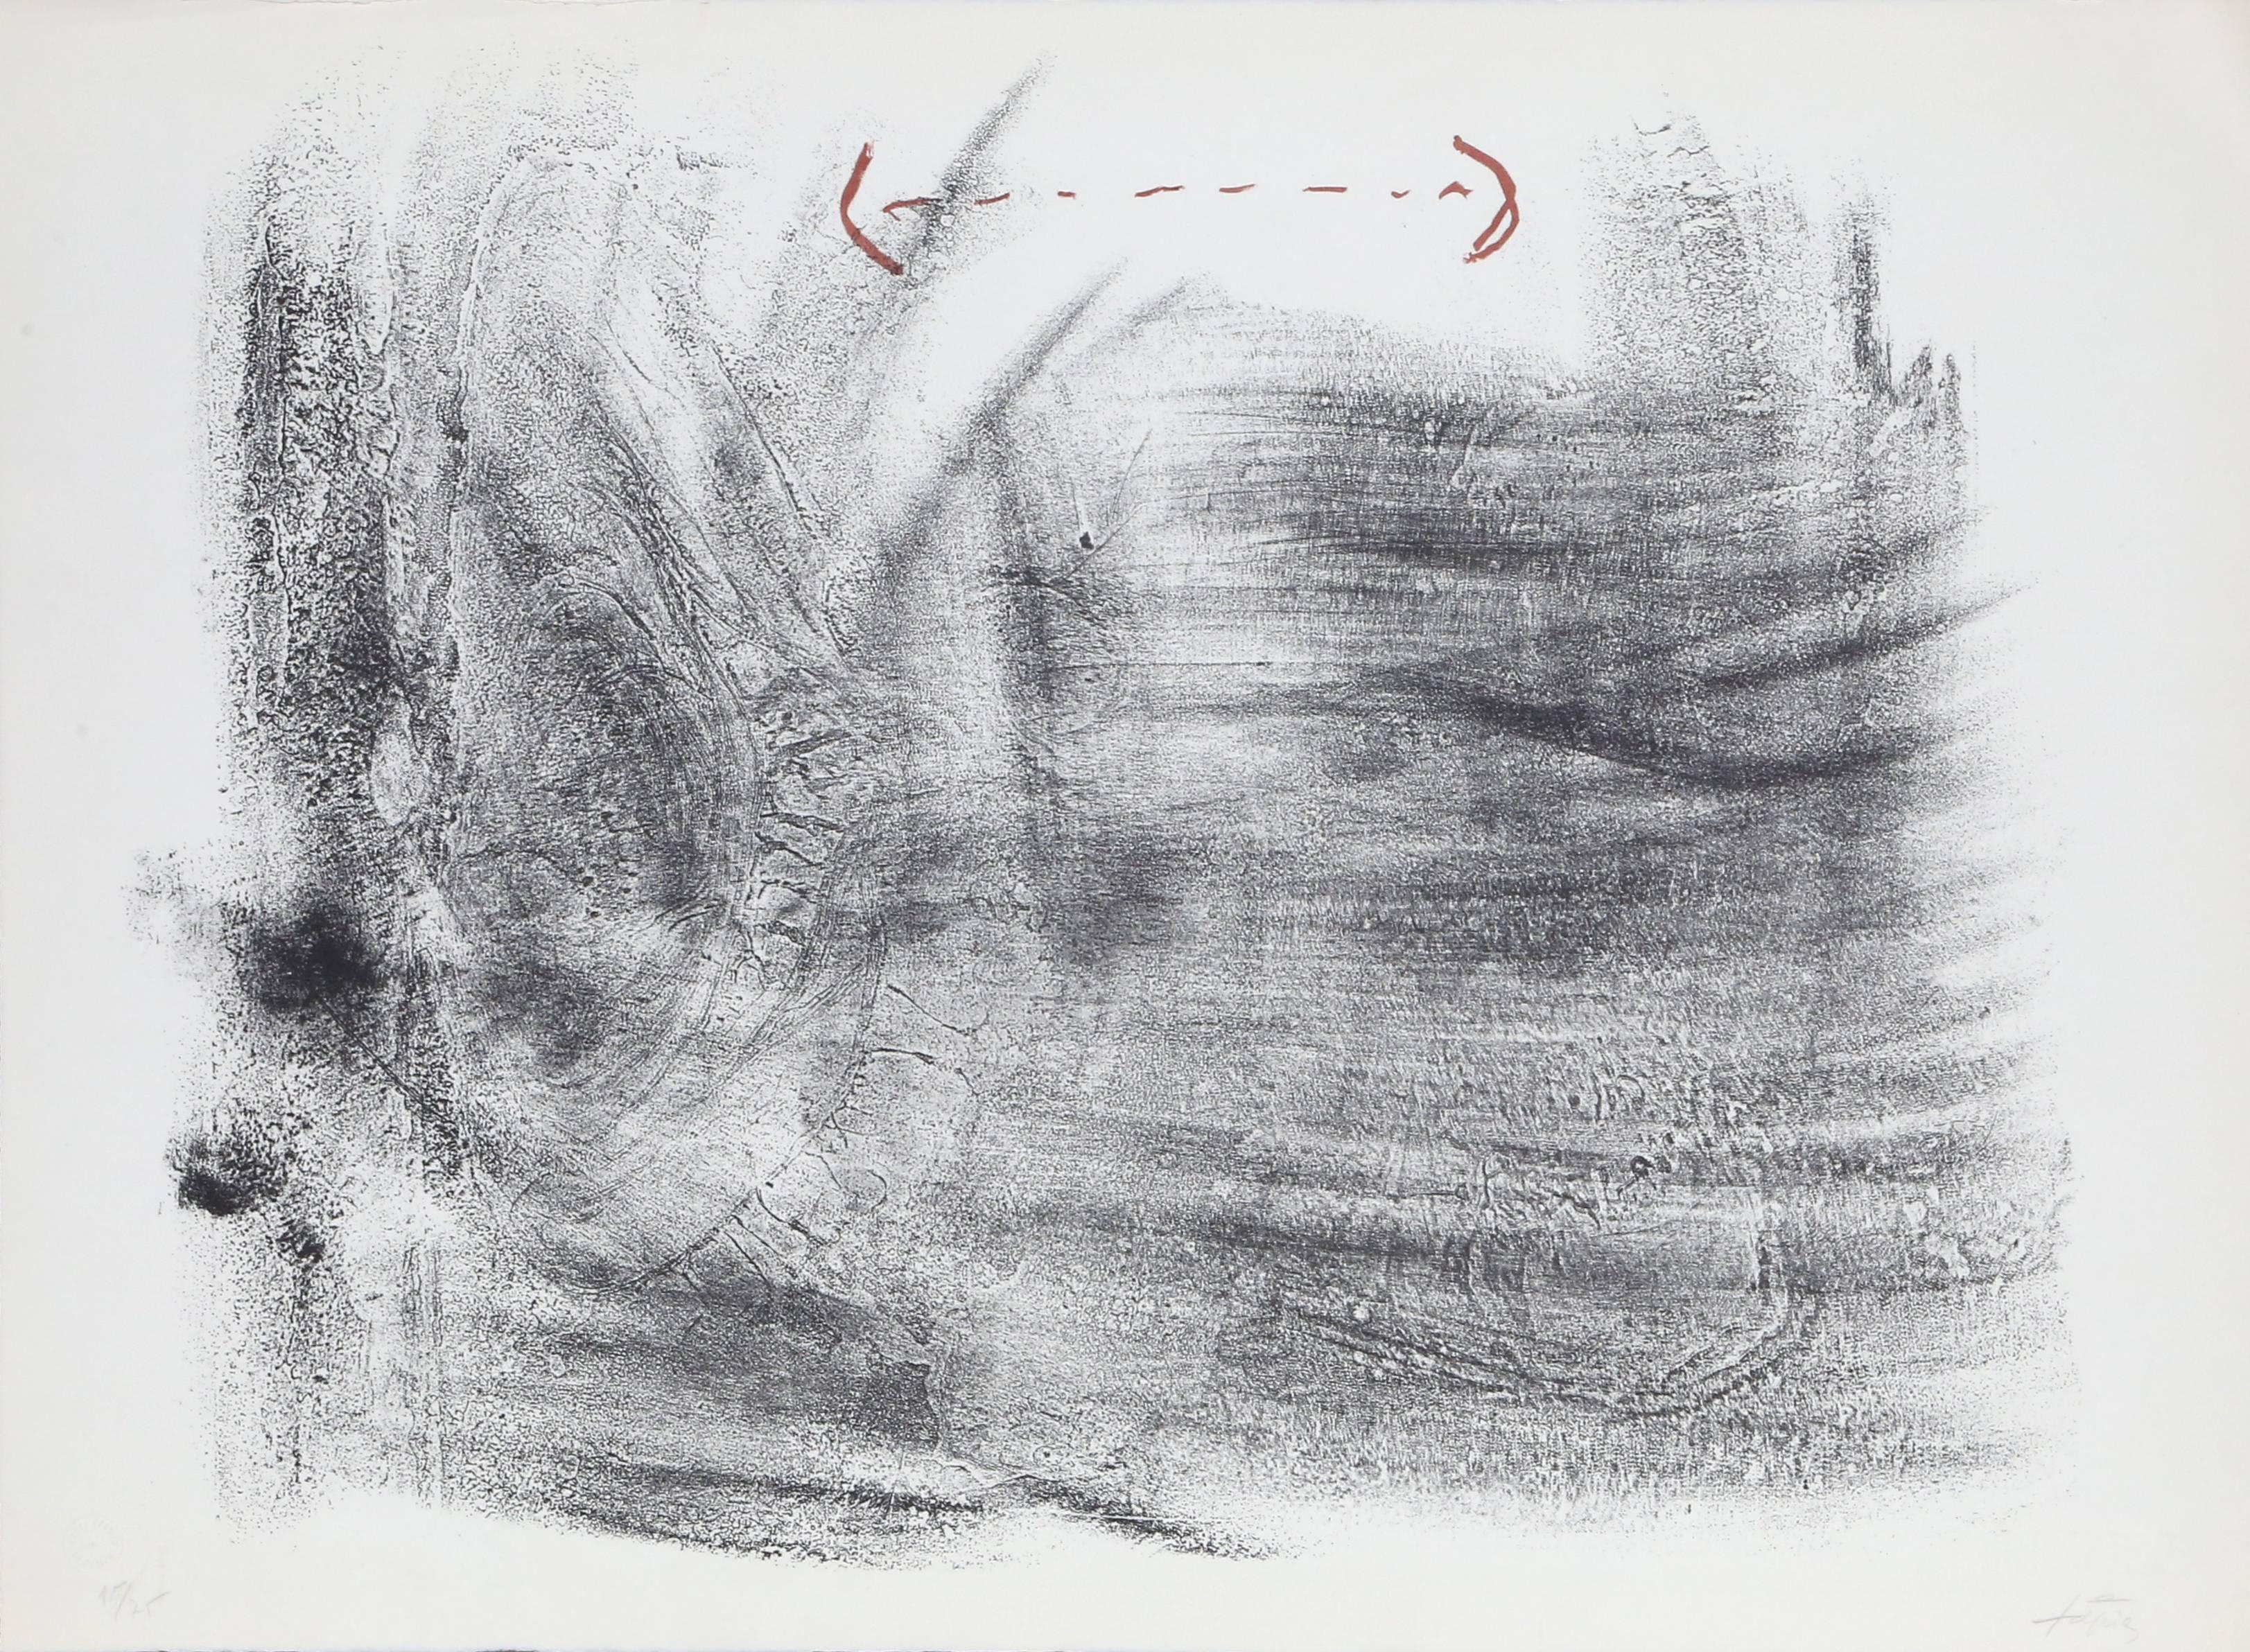 untitled from St. Gallen, by Antoni Tapies